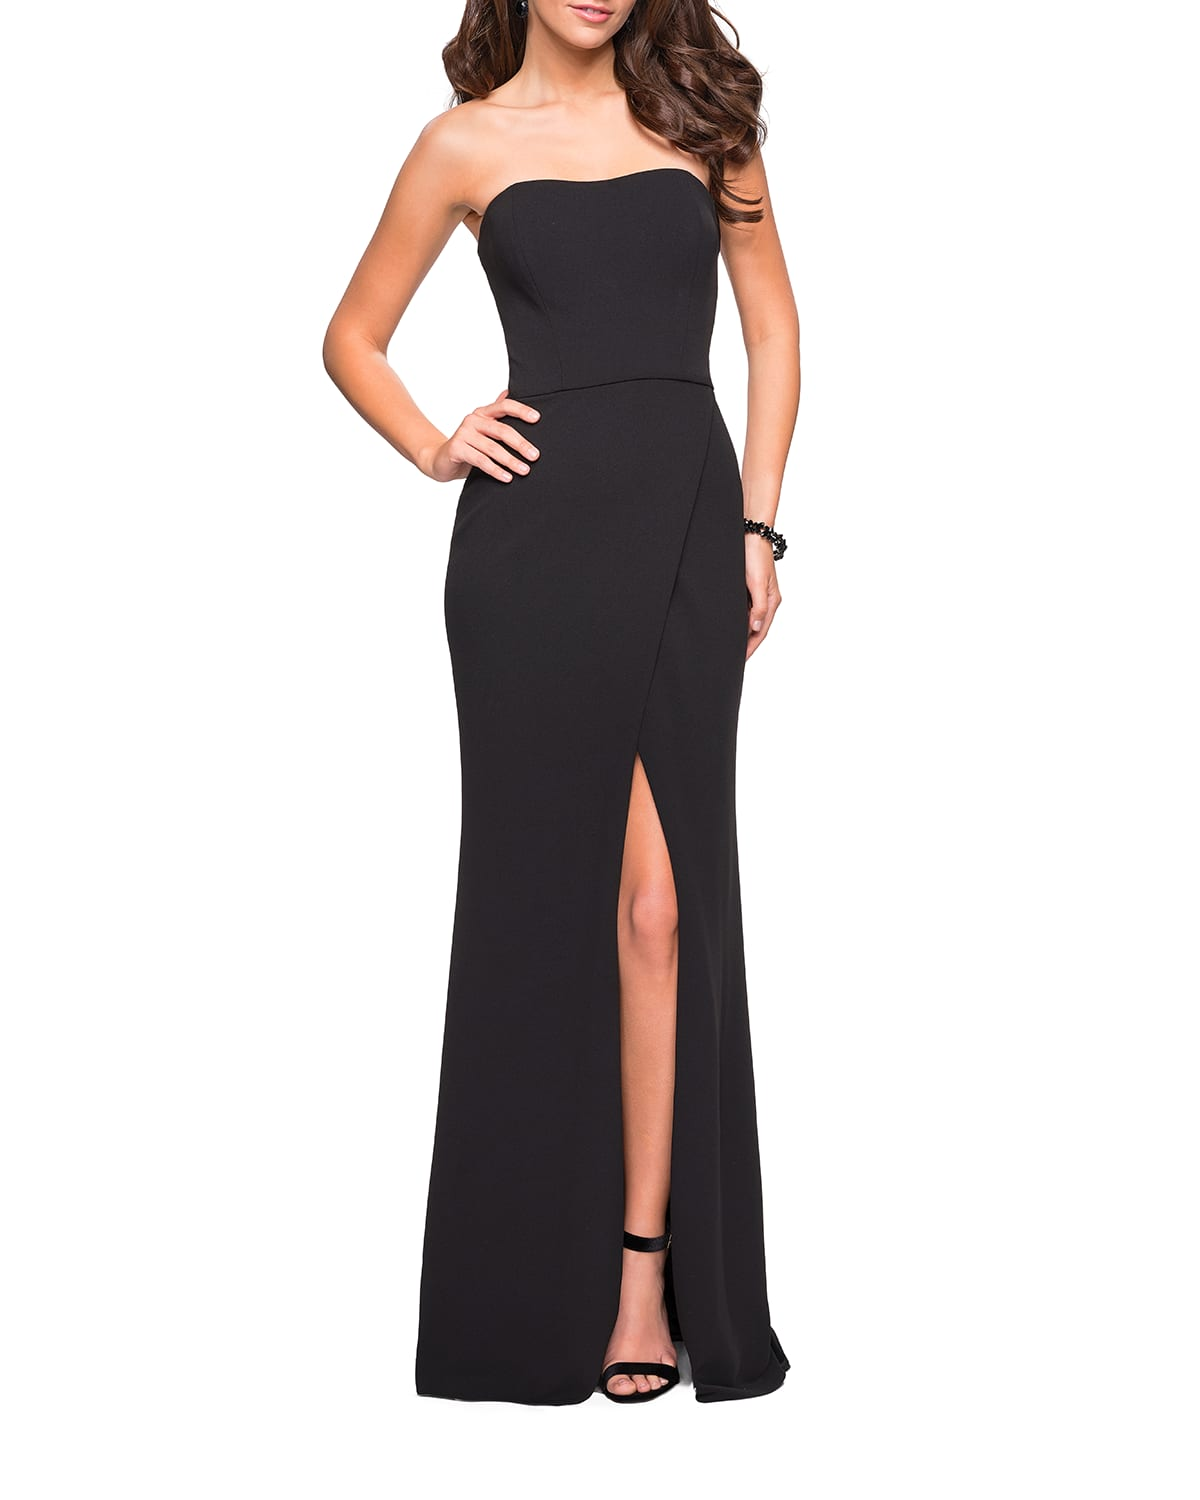 Strapless Strappy-Back Jersey Gown with Slit